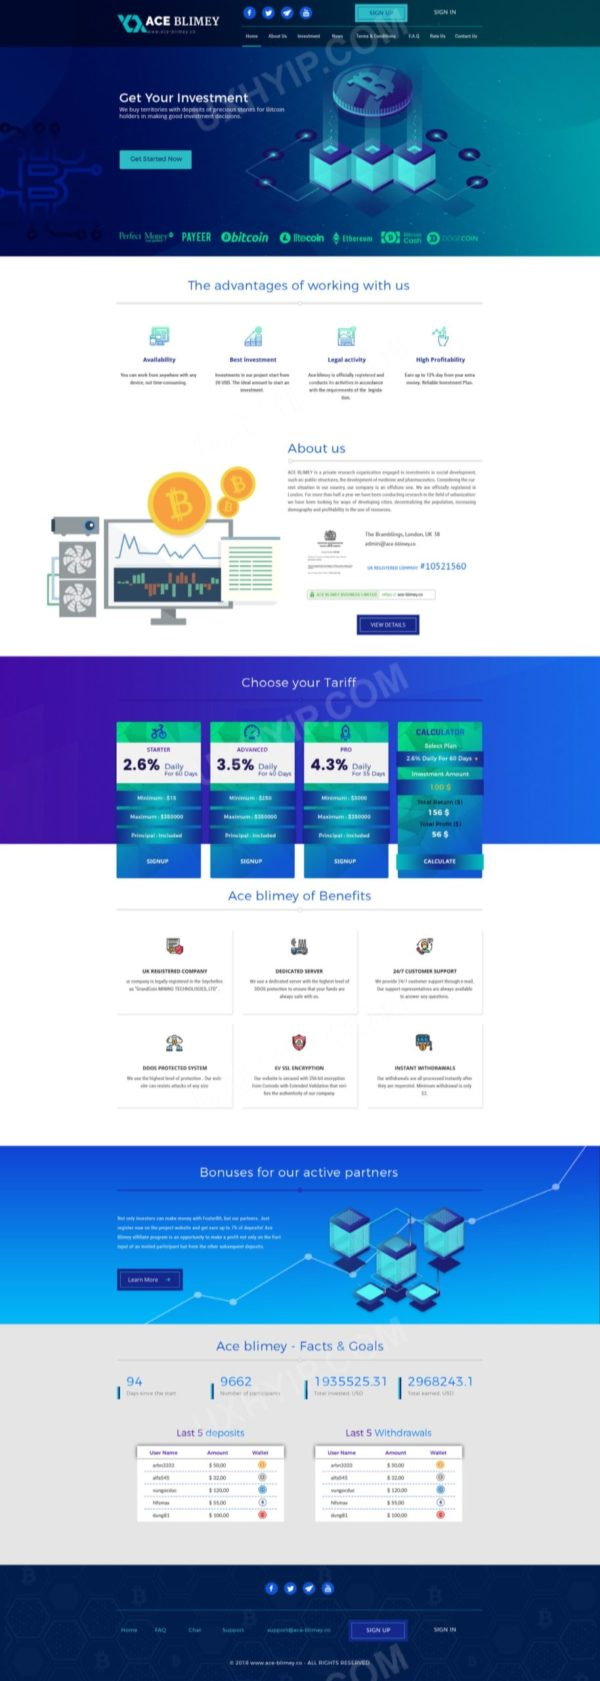 HYIP Template - Investment Business Template AceBlimey ID 139